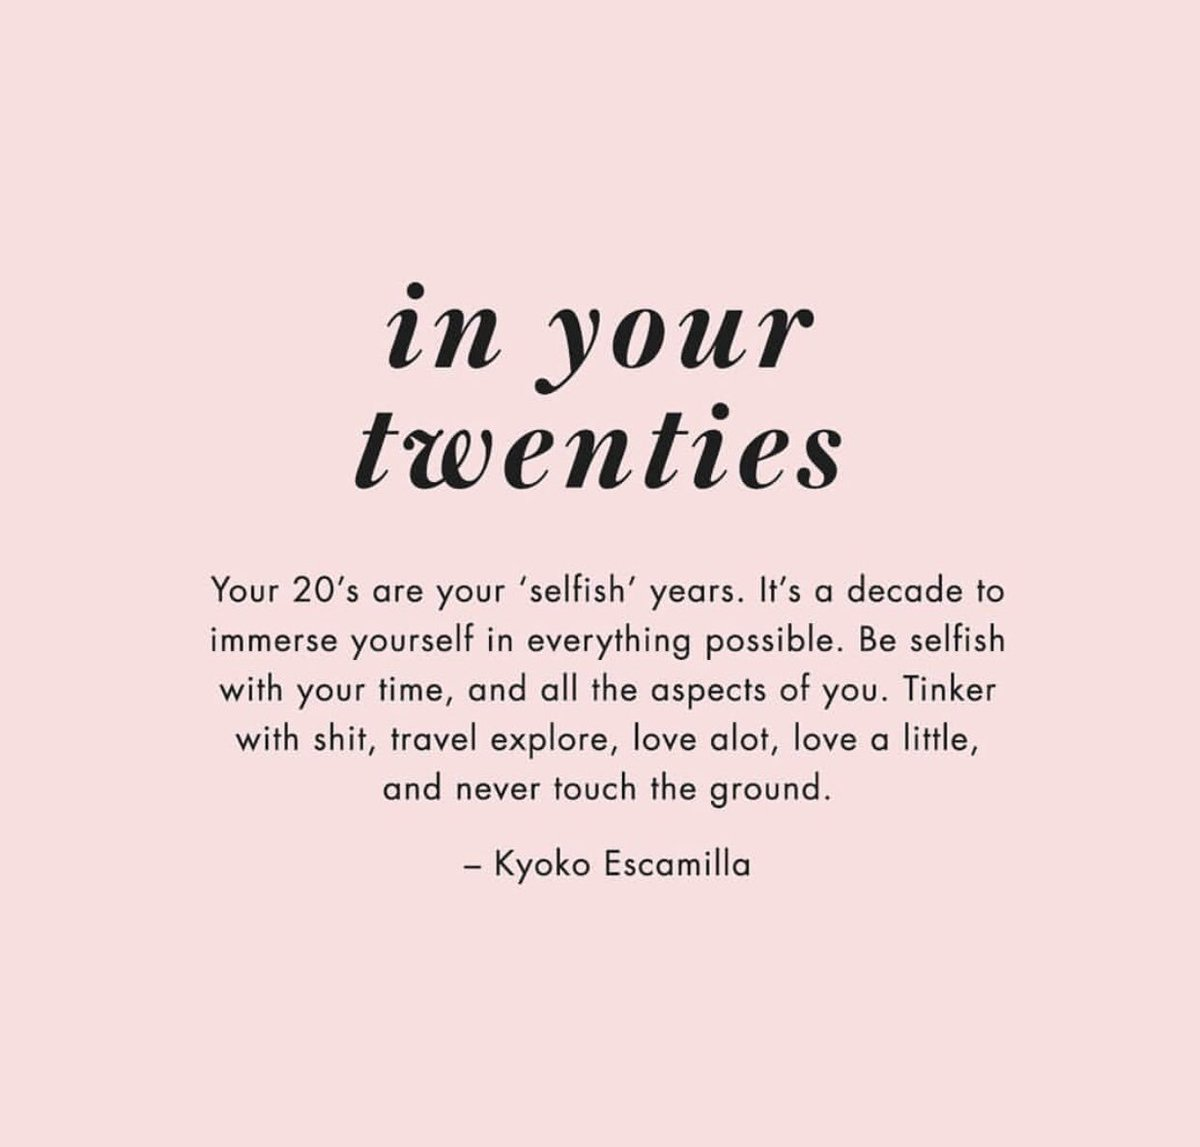 Twenties are your selfish years